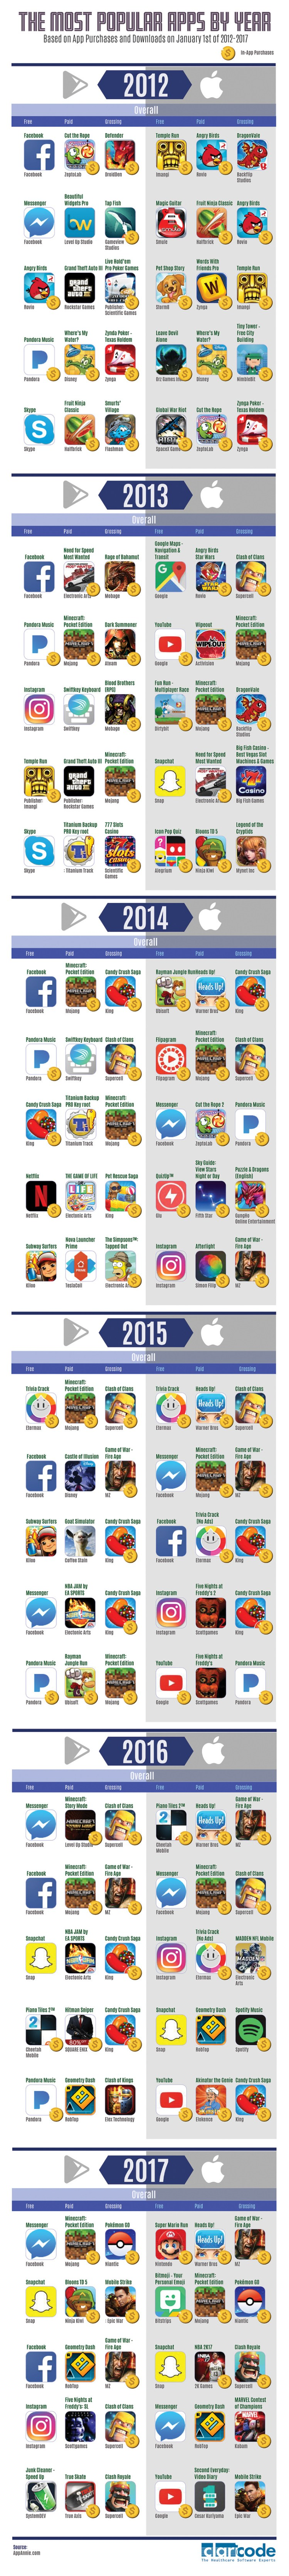 most-downloaded-apps-claricode